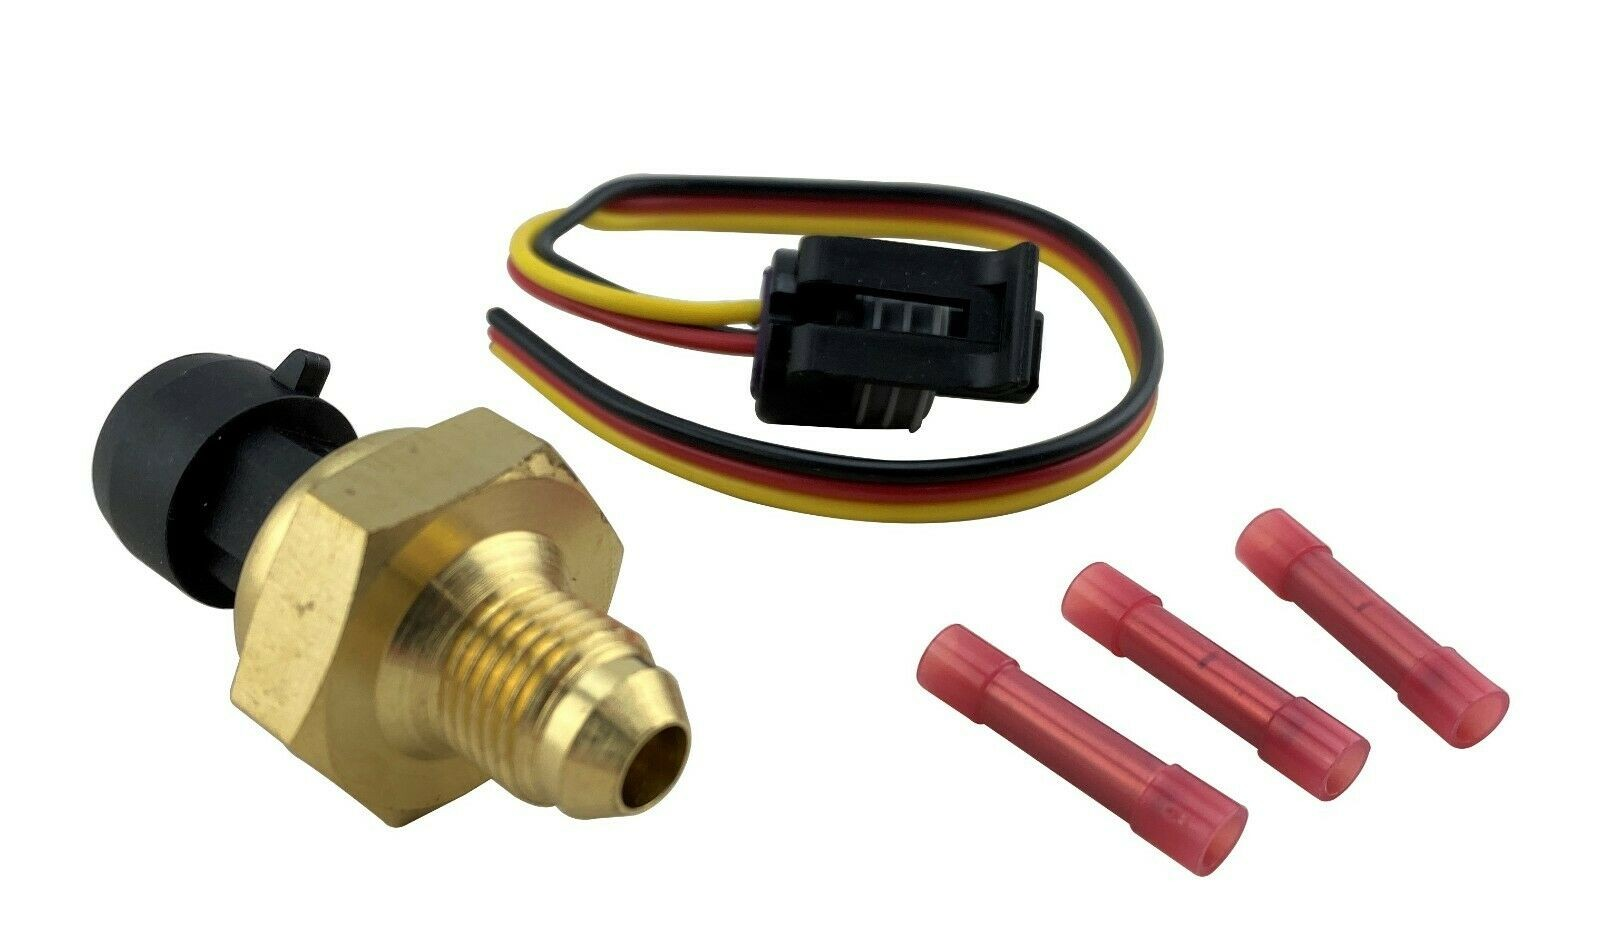 EBP Exhaust Back Pressure Sensor for 05-12 F250 F350 F450 E350 E450 6.0L Diesel